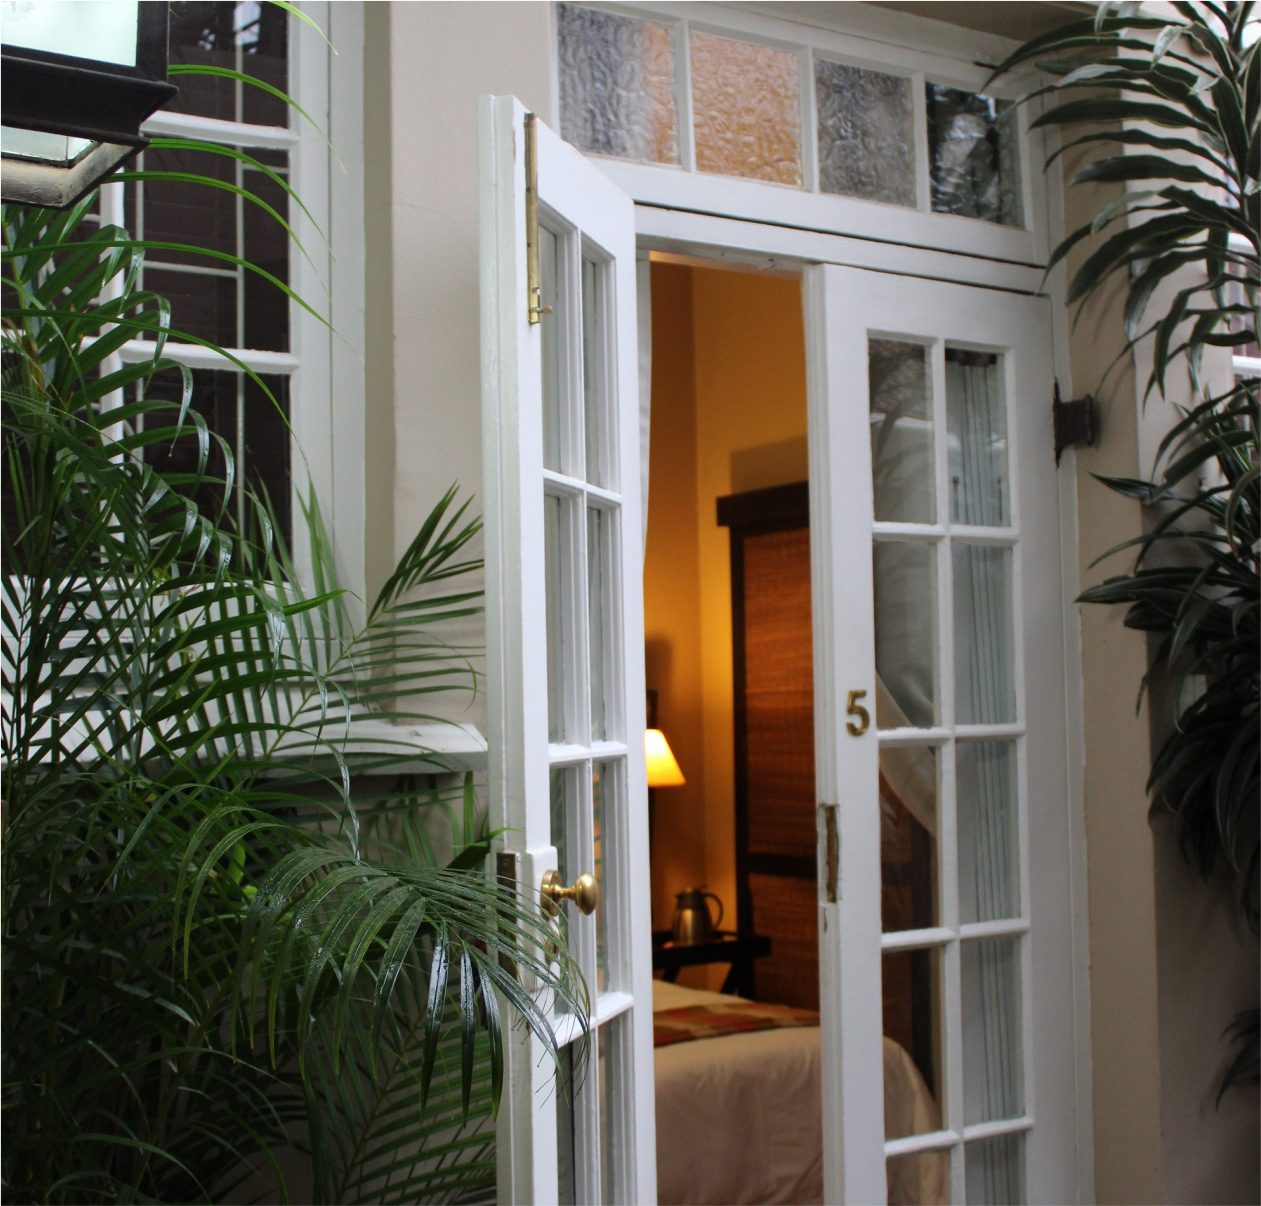 Acorn B&B Outdoor Gym - Guesthouse Accommodation - Berea, Durban, South Africa